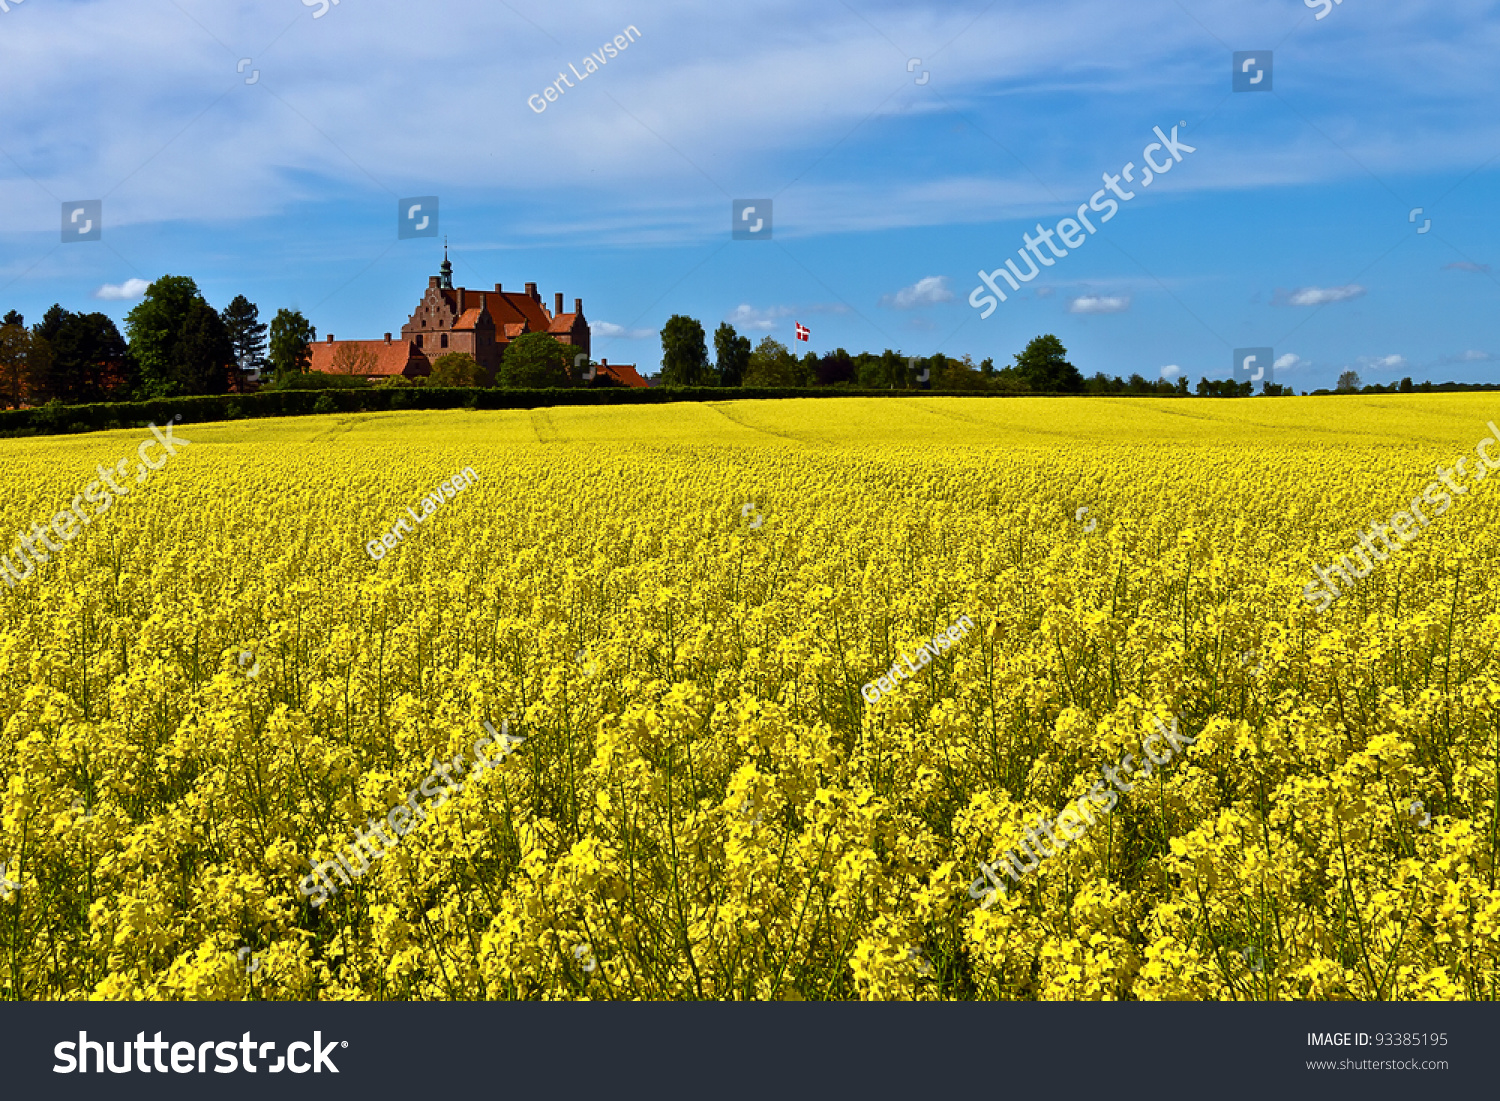 Surrounded By Canoloa Feilds Quotes: An Old Danish Castle Surrounded By Canola Fields Stock